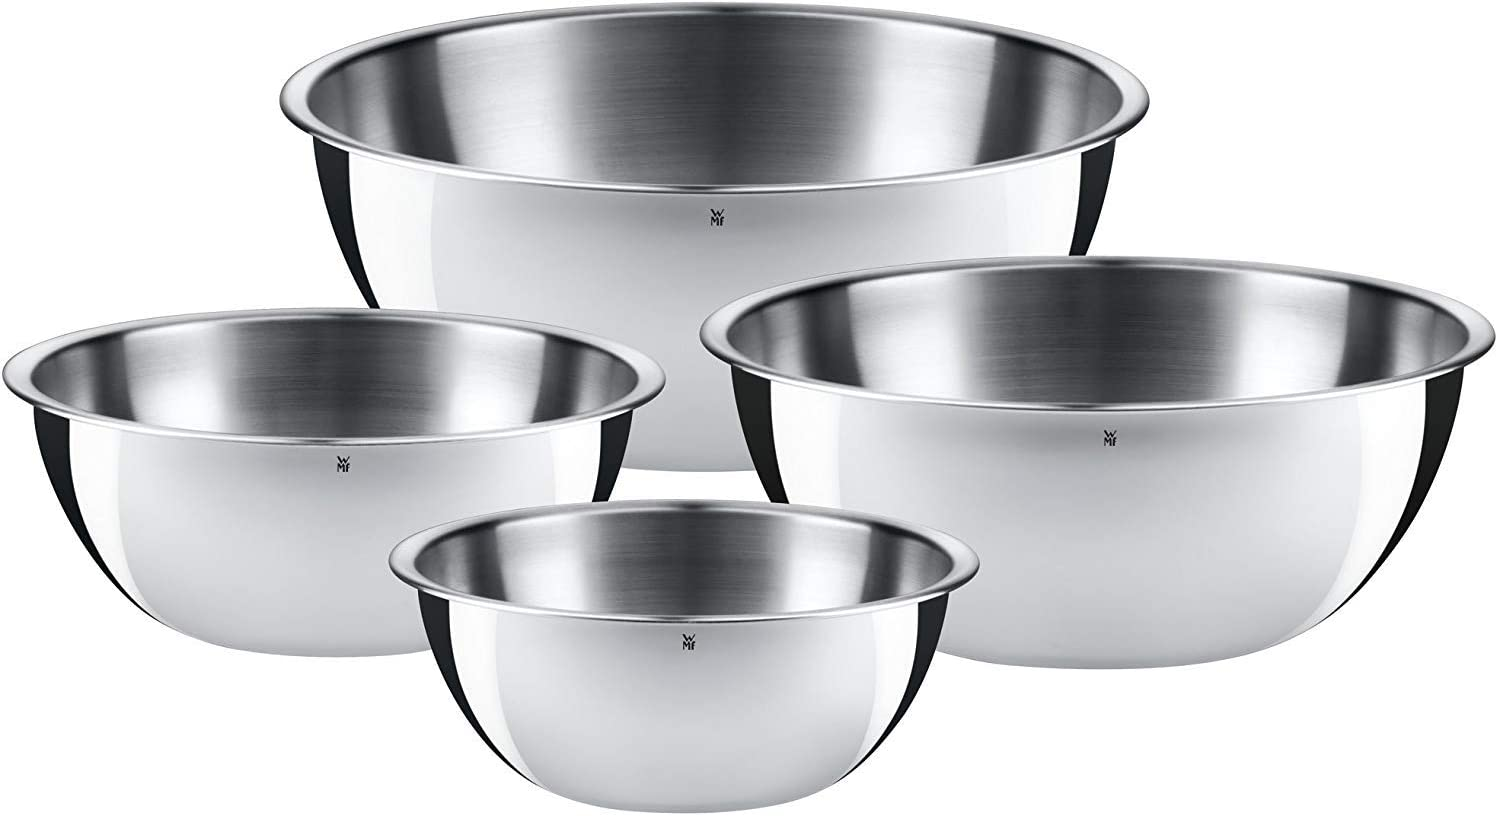 WMF Gourmet-Set de 4 Boles, Acero Inoxidable Mate